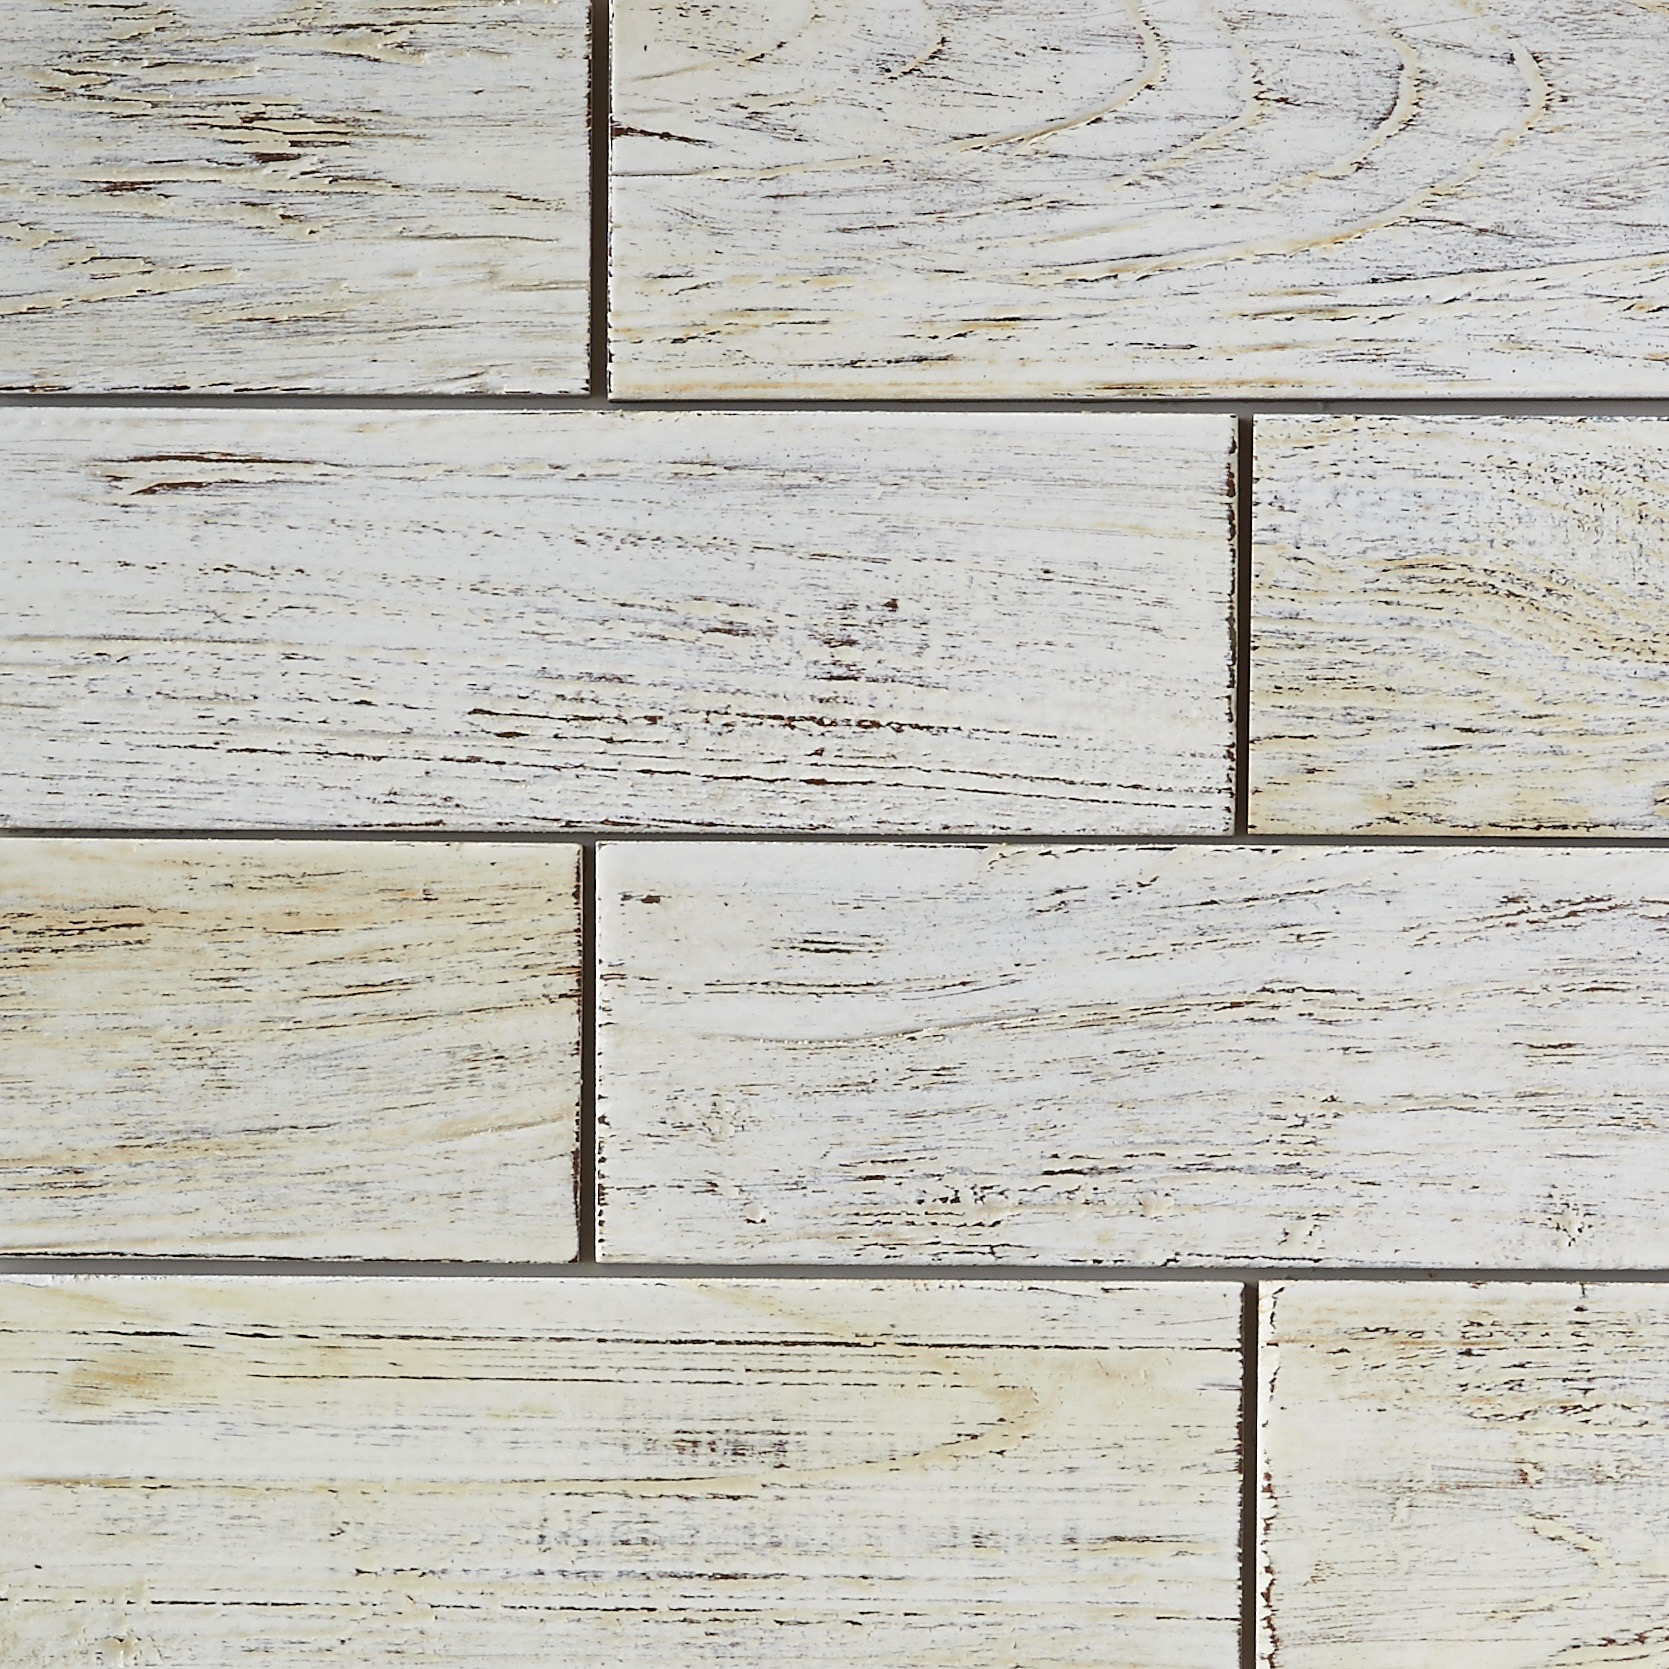 white resin finish 11 - Teak Tile - Subway